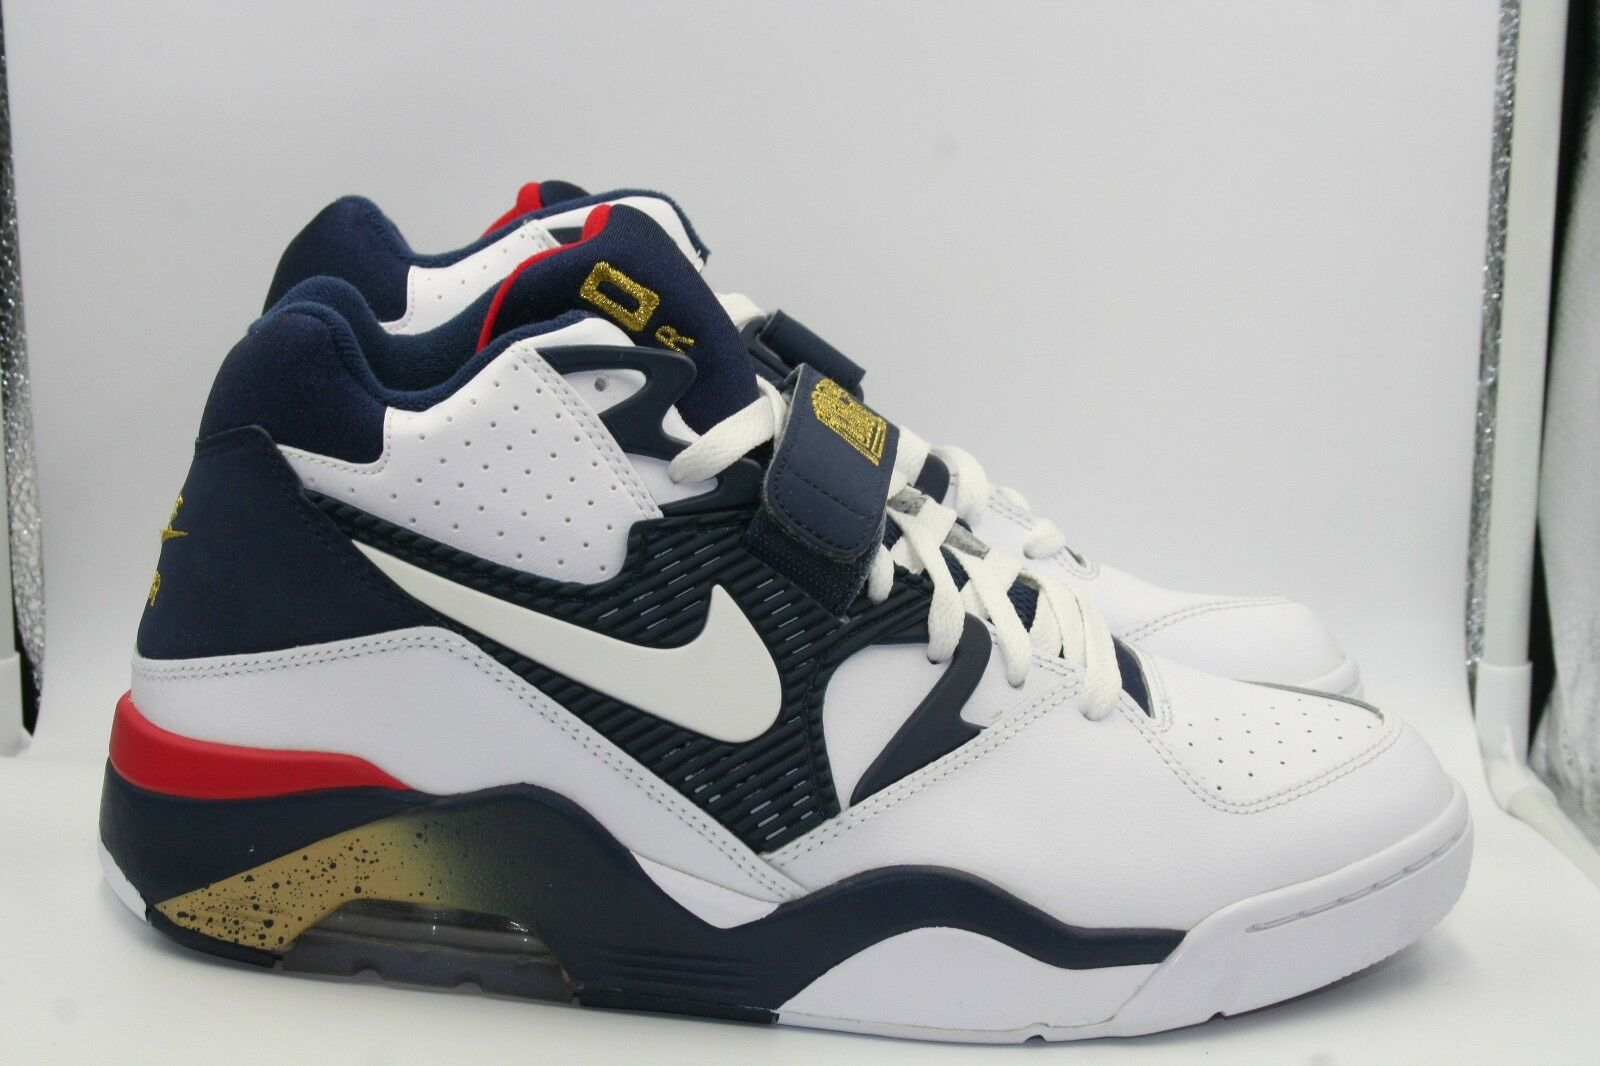 Nike Nike Nike Air Force 180 Olympic Sz 10.5 Charles Barkley Team USA Navy bluee Red gold 4cb772